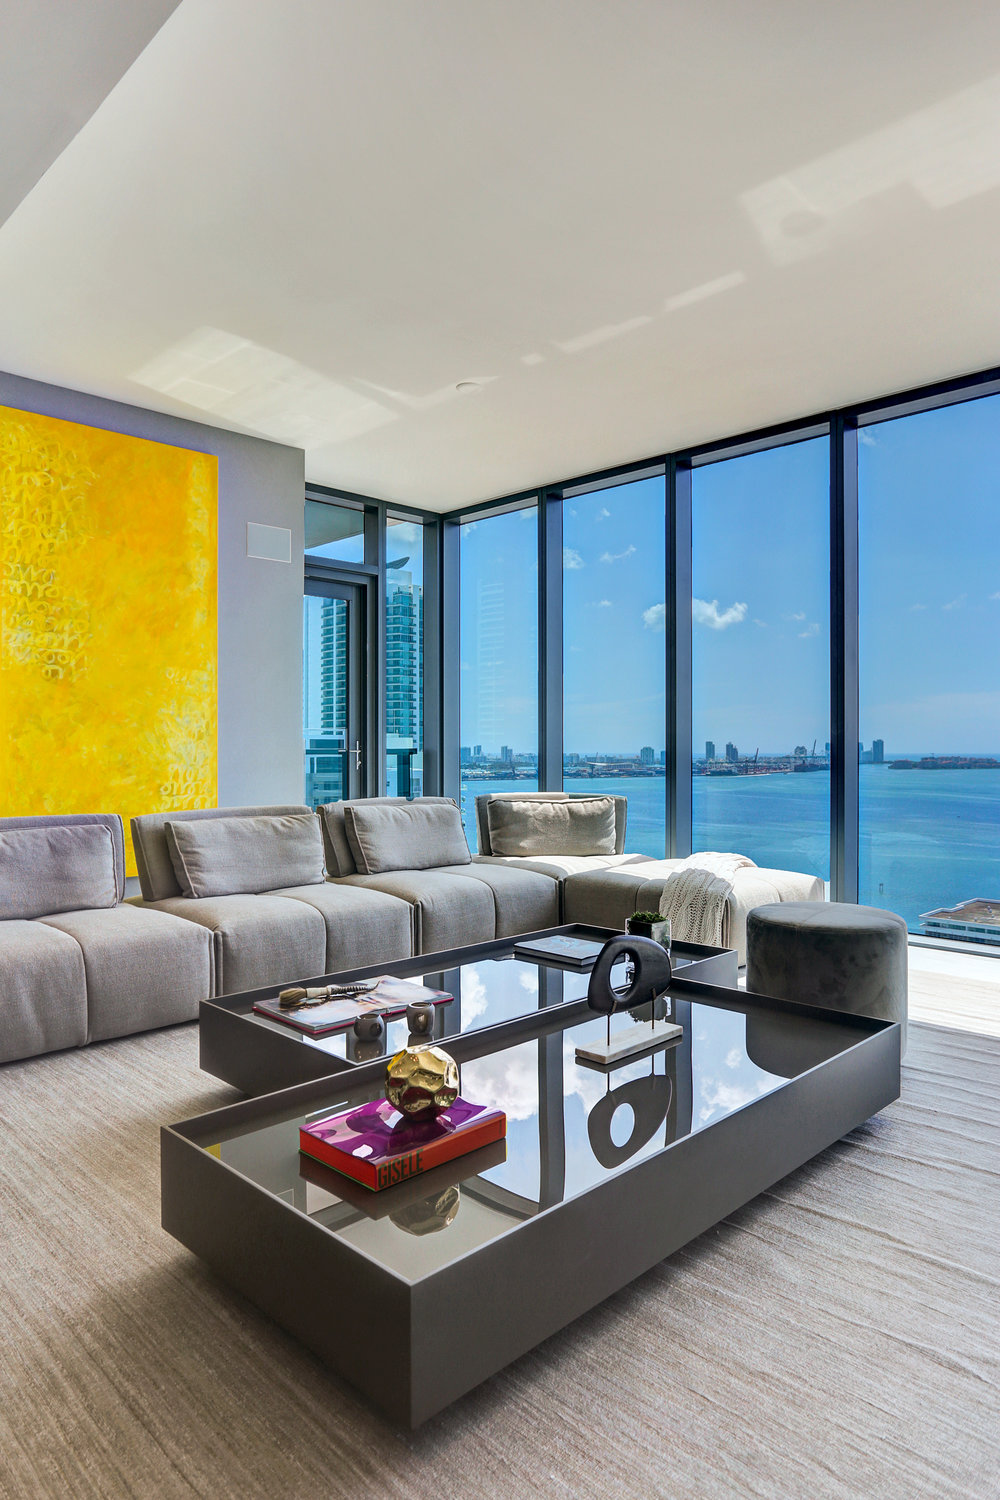 echo brickell model unit #2901 - 52.jpg